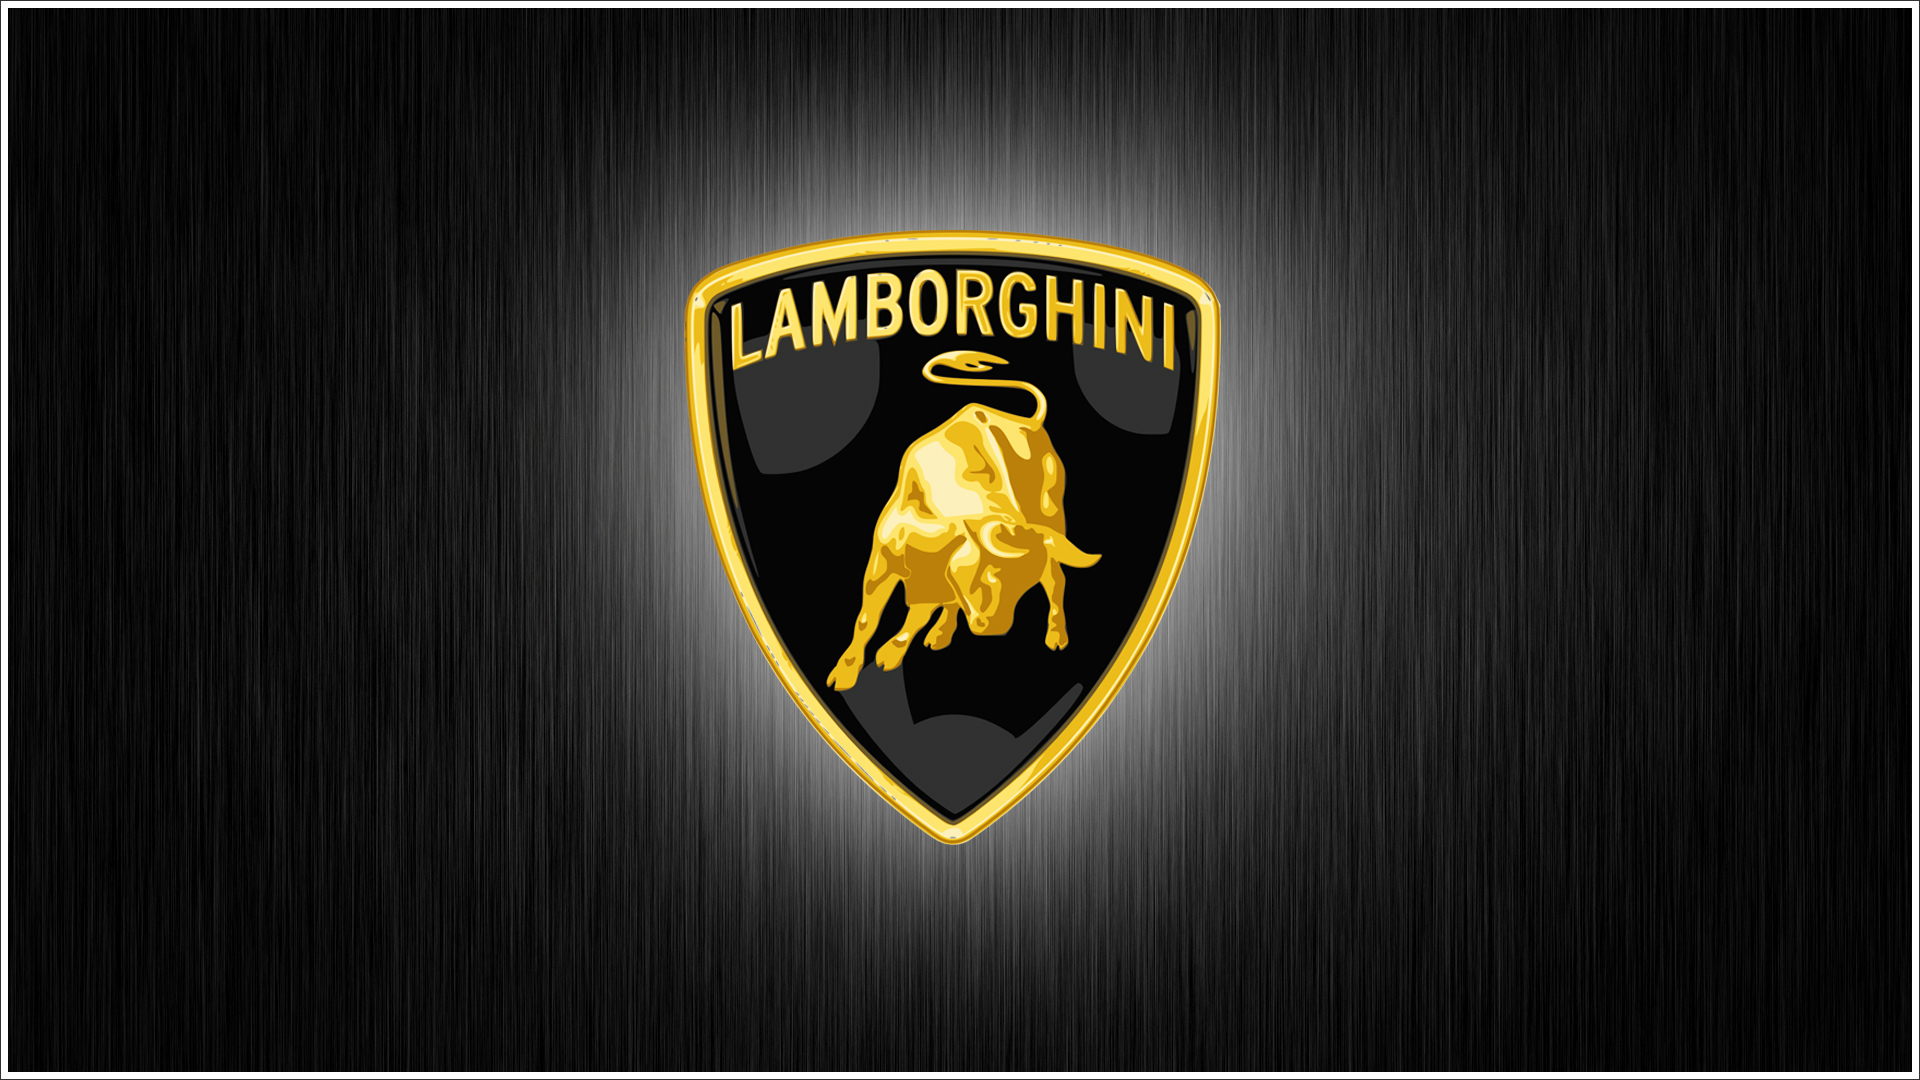 Lamborghini logo wallpaper high resolution